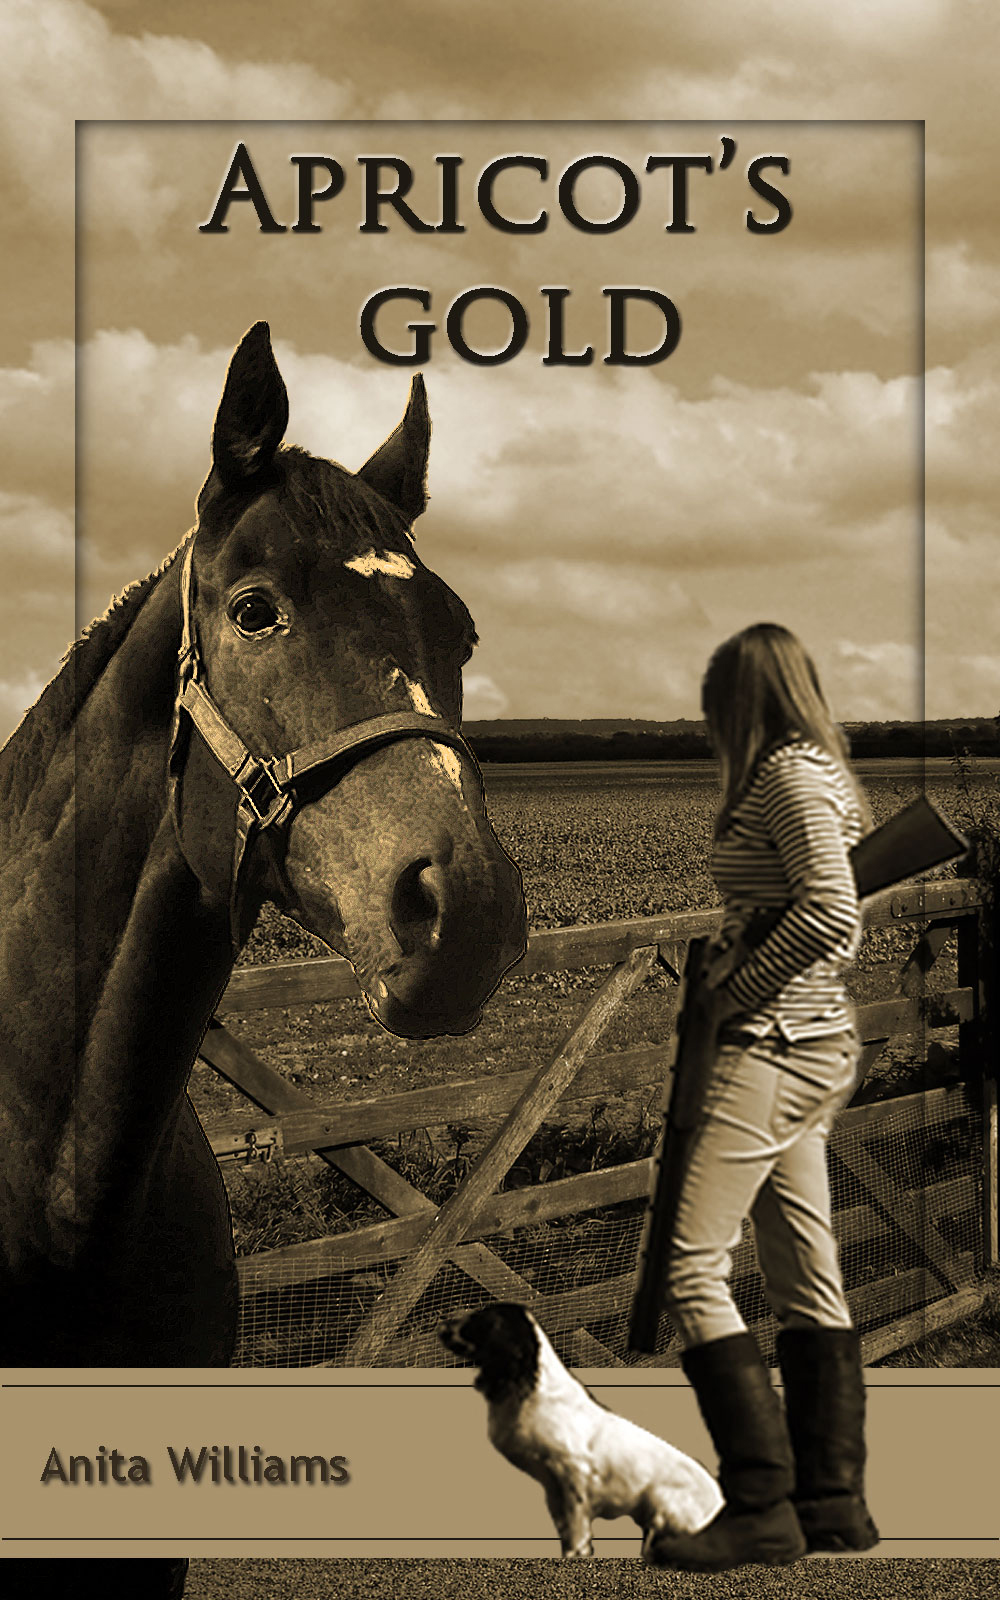 Apricots Gold book cover